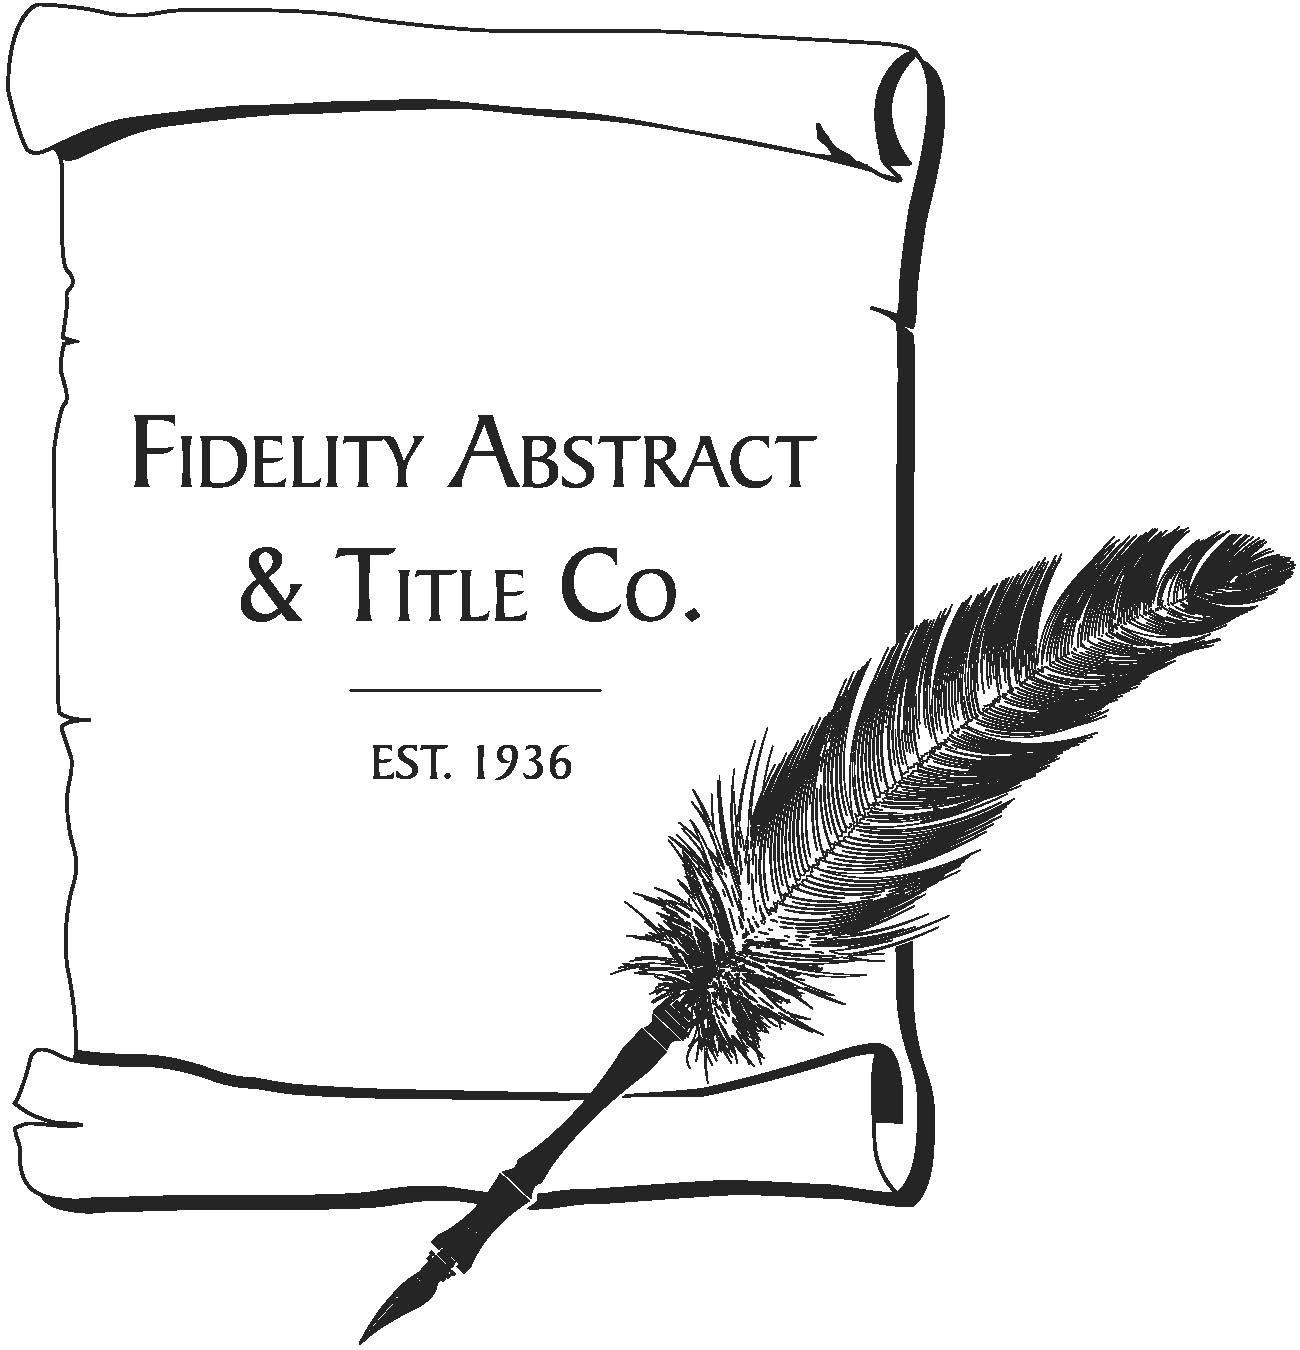 Fidelity Abstract Logo 2019.jpg